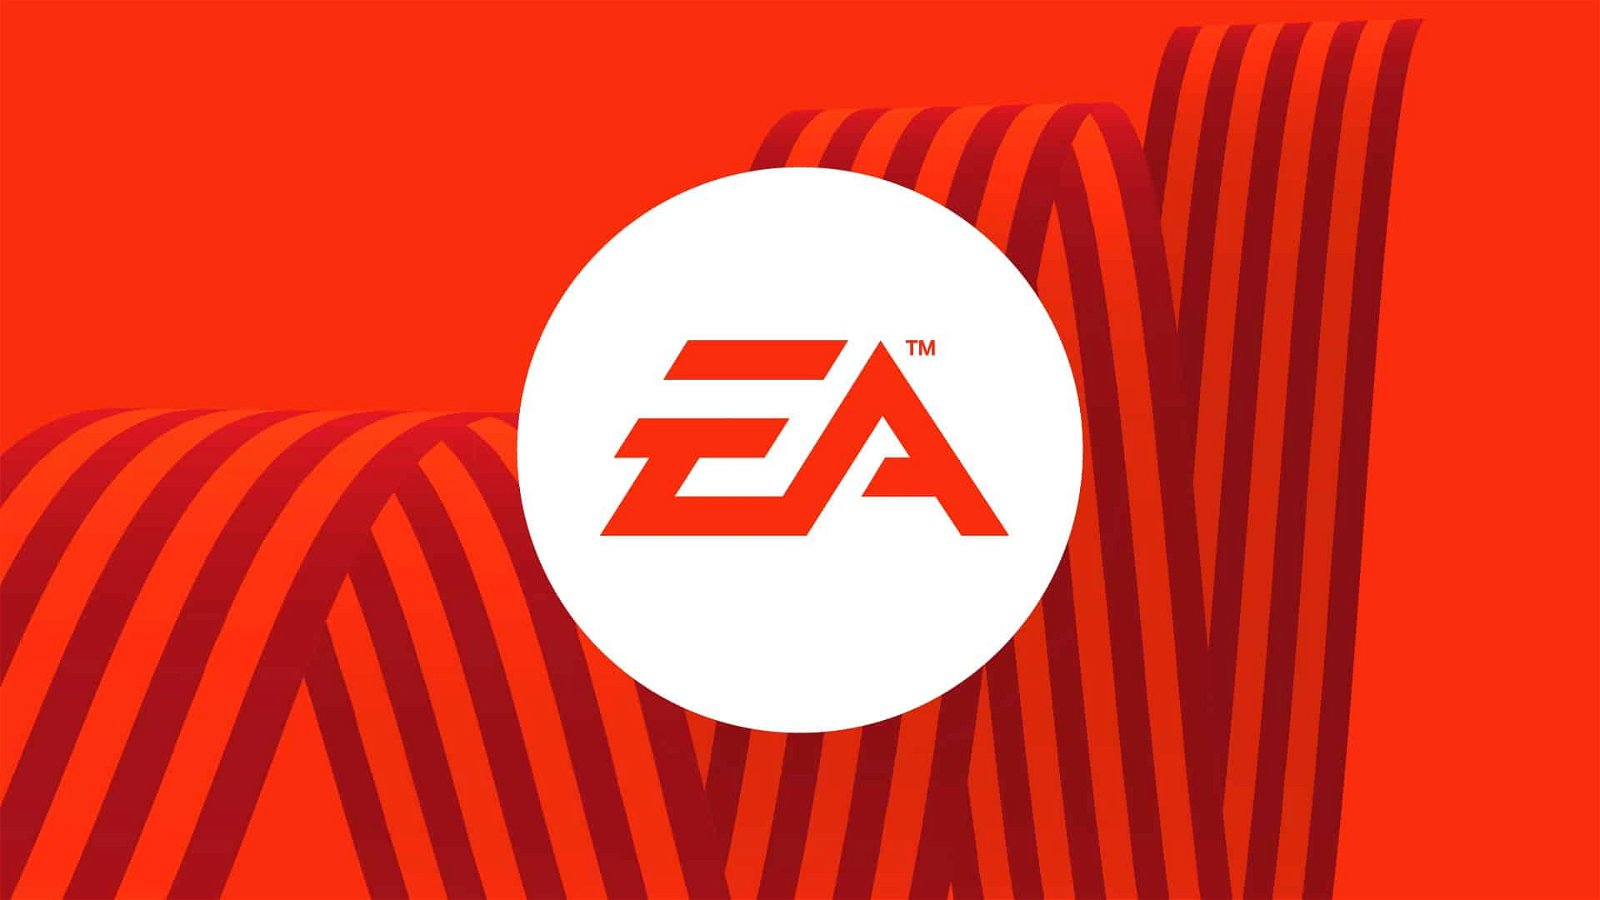 EA Downsizes Marketing, Publishing and Other Departments, Laying Off 350 Employees Inspite of Financial Growth